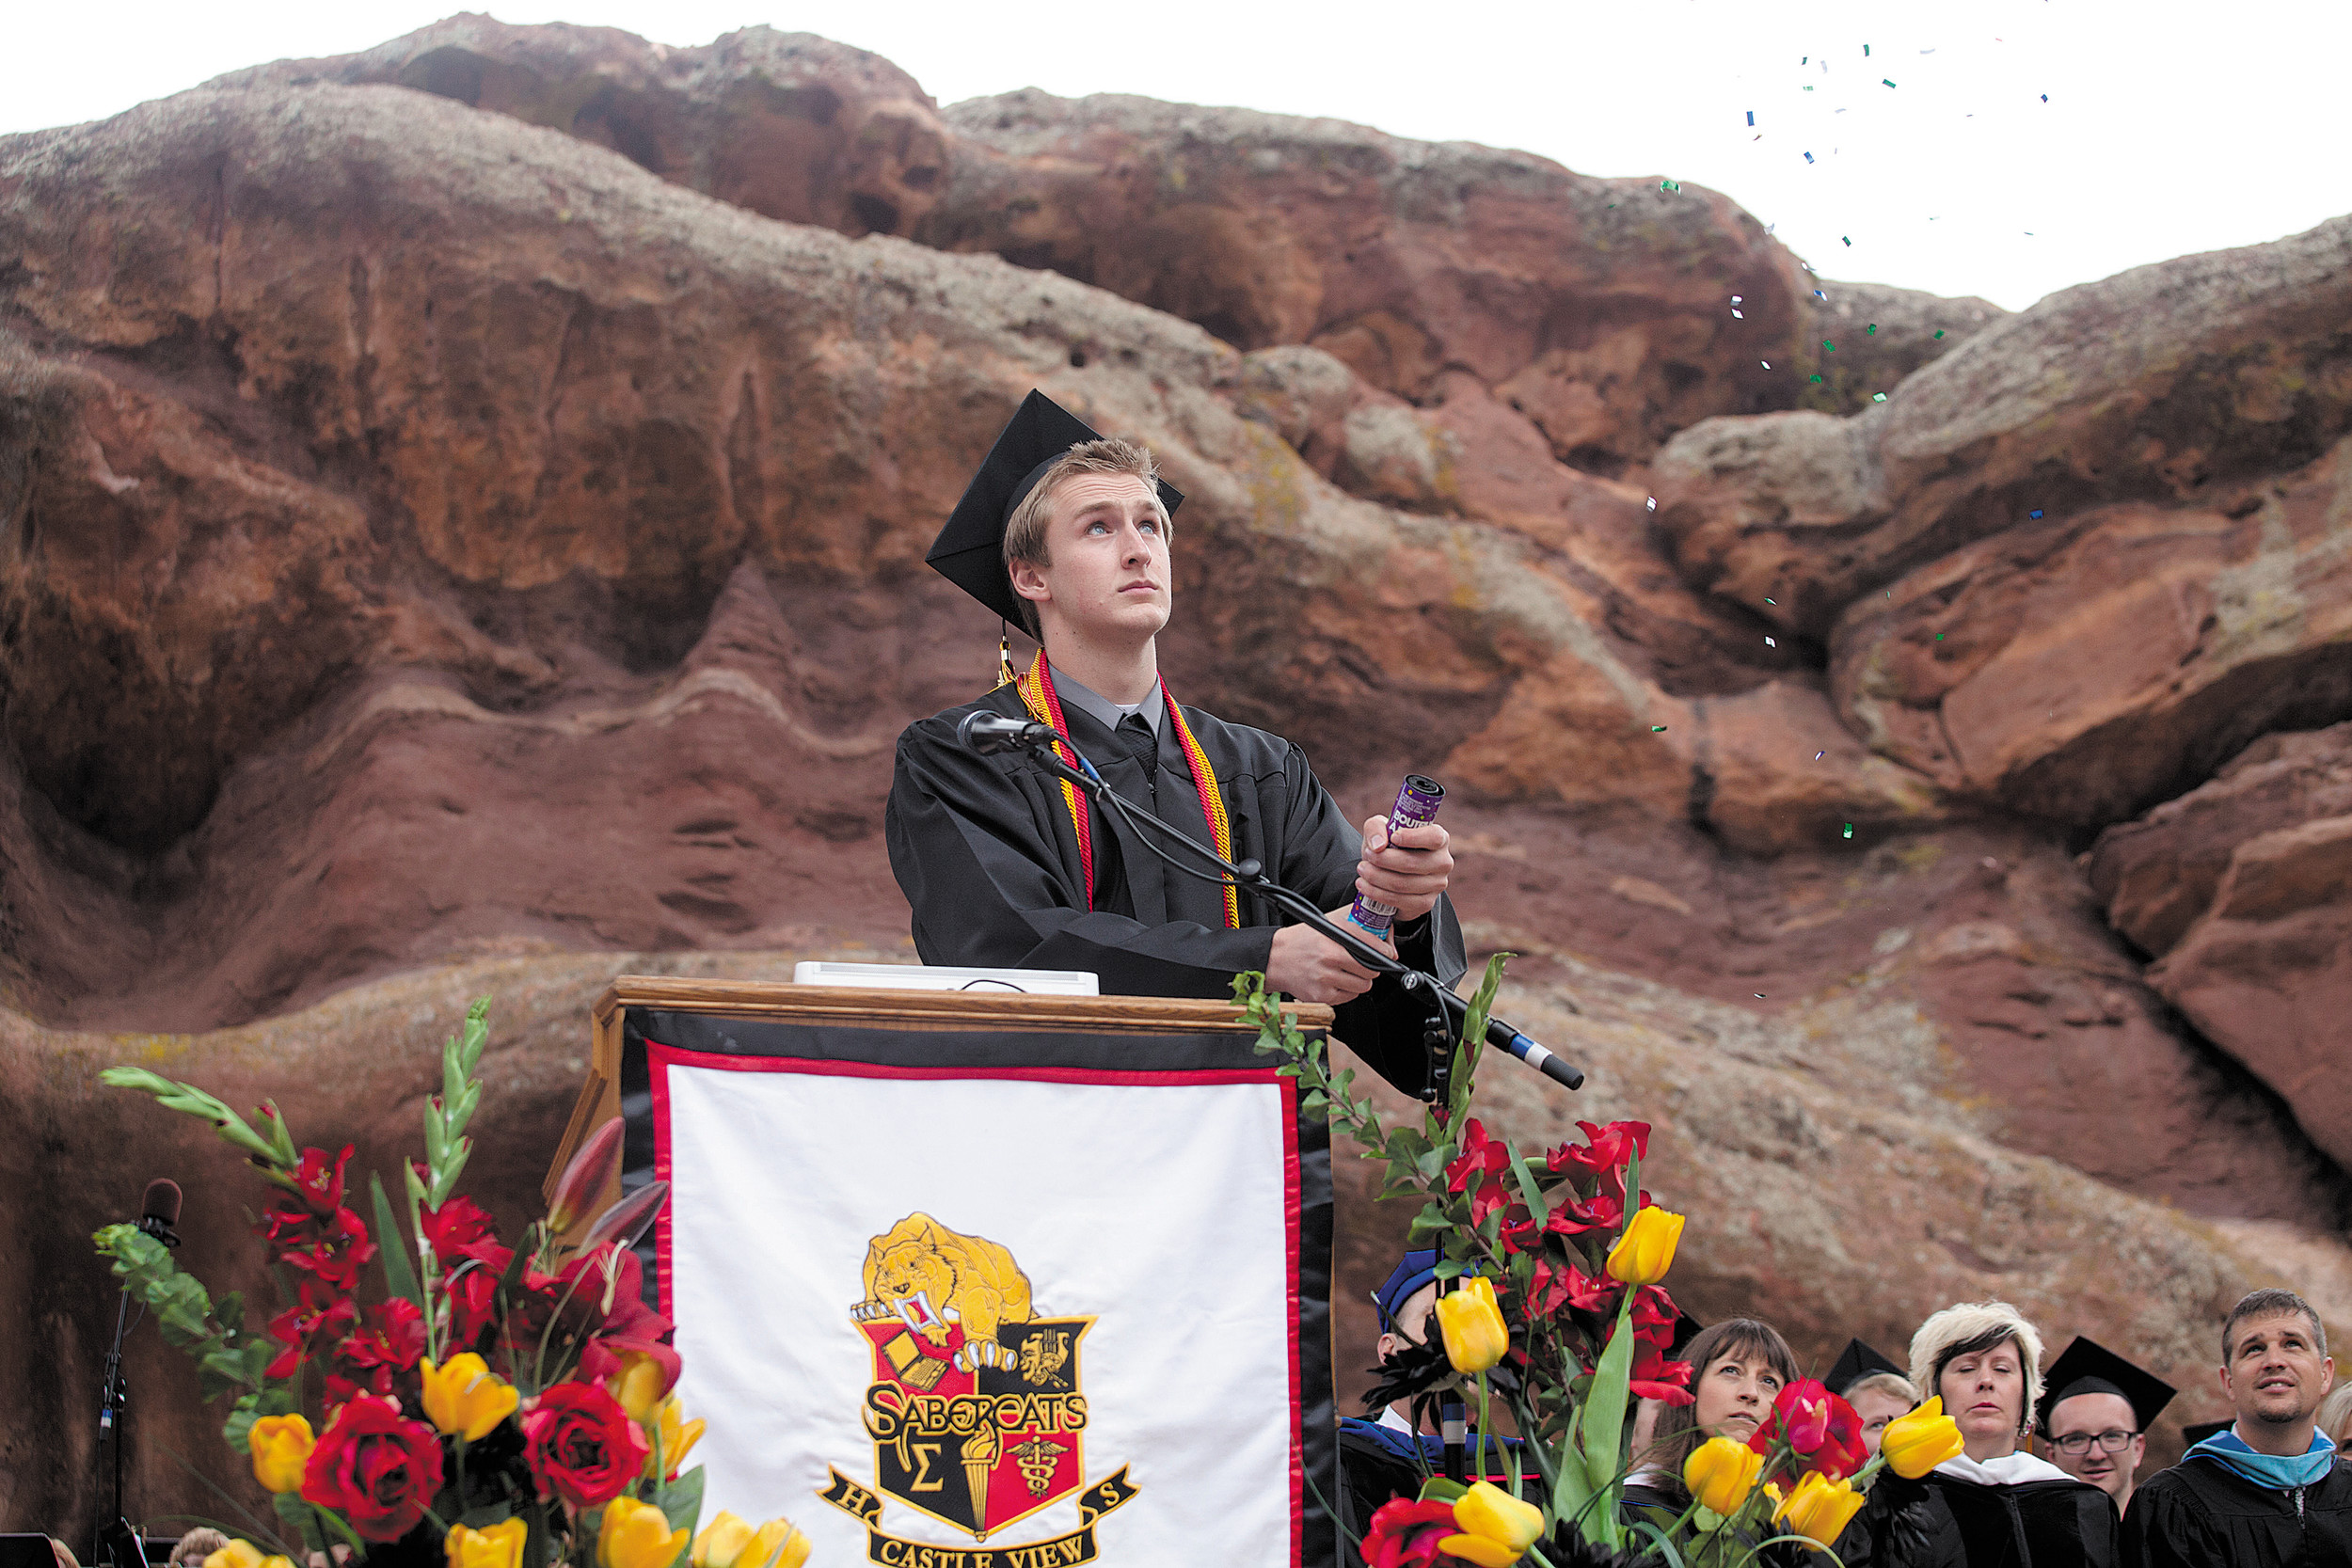 Parker Lewis pulls out a confetti popper during his speech for the Biotechnology and Health Sciences Academy at Castle View High School's commencement ceremony at Red Rocks Amphitheater on May 21.